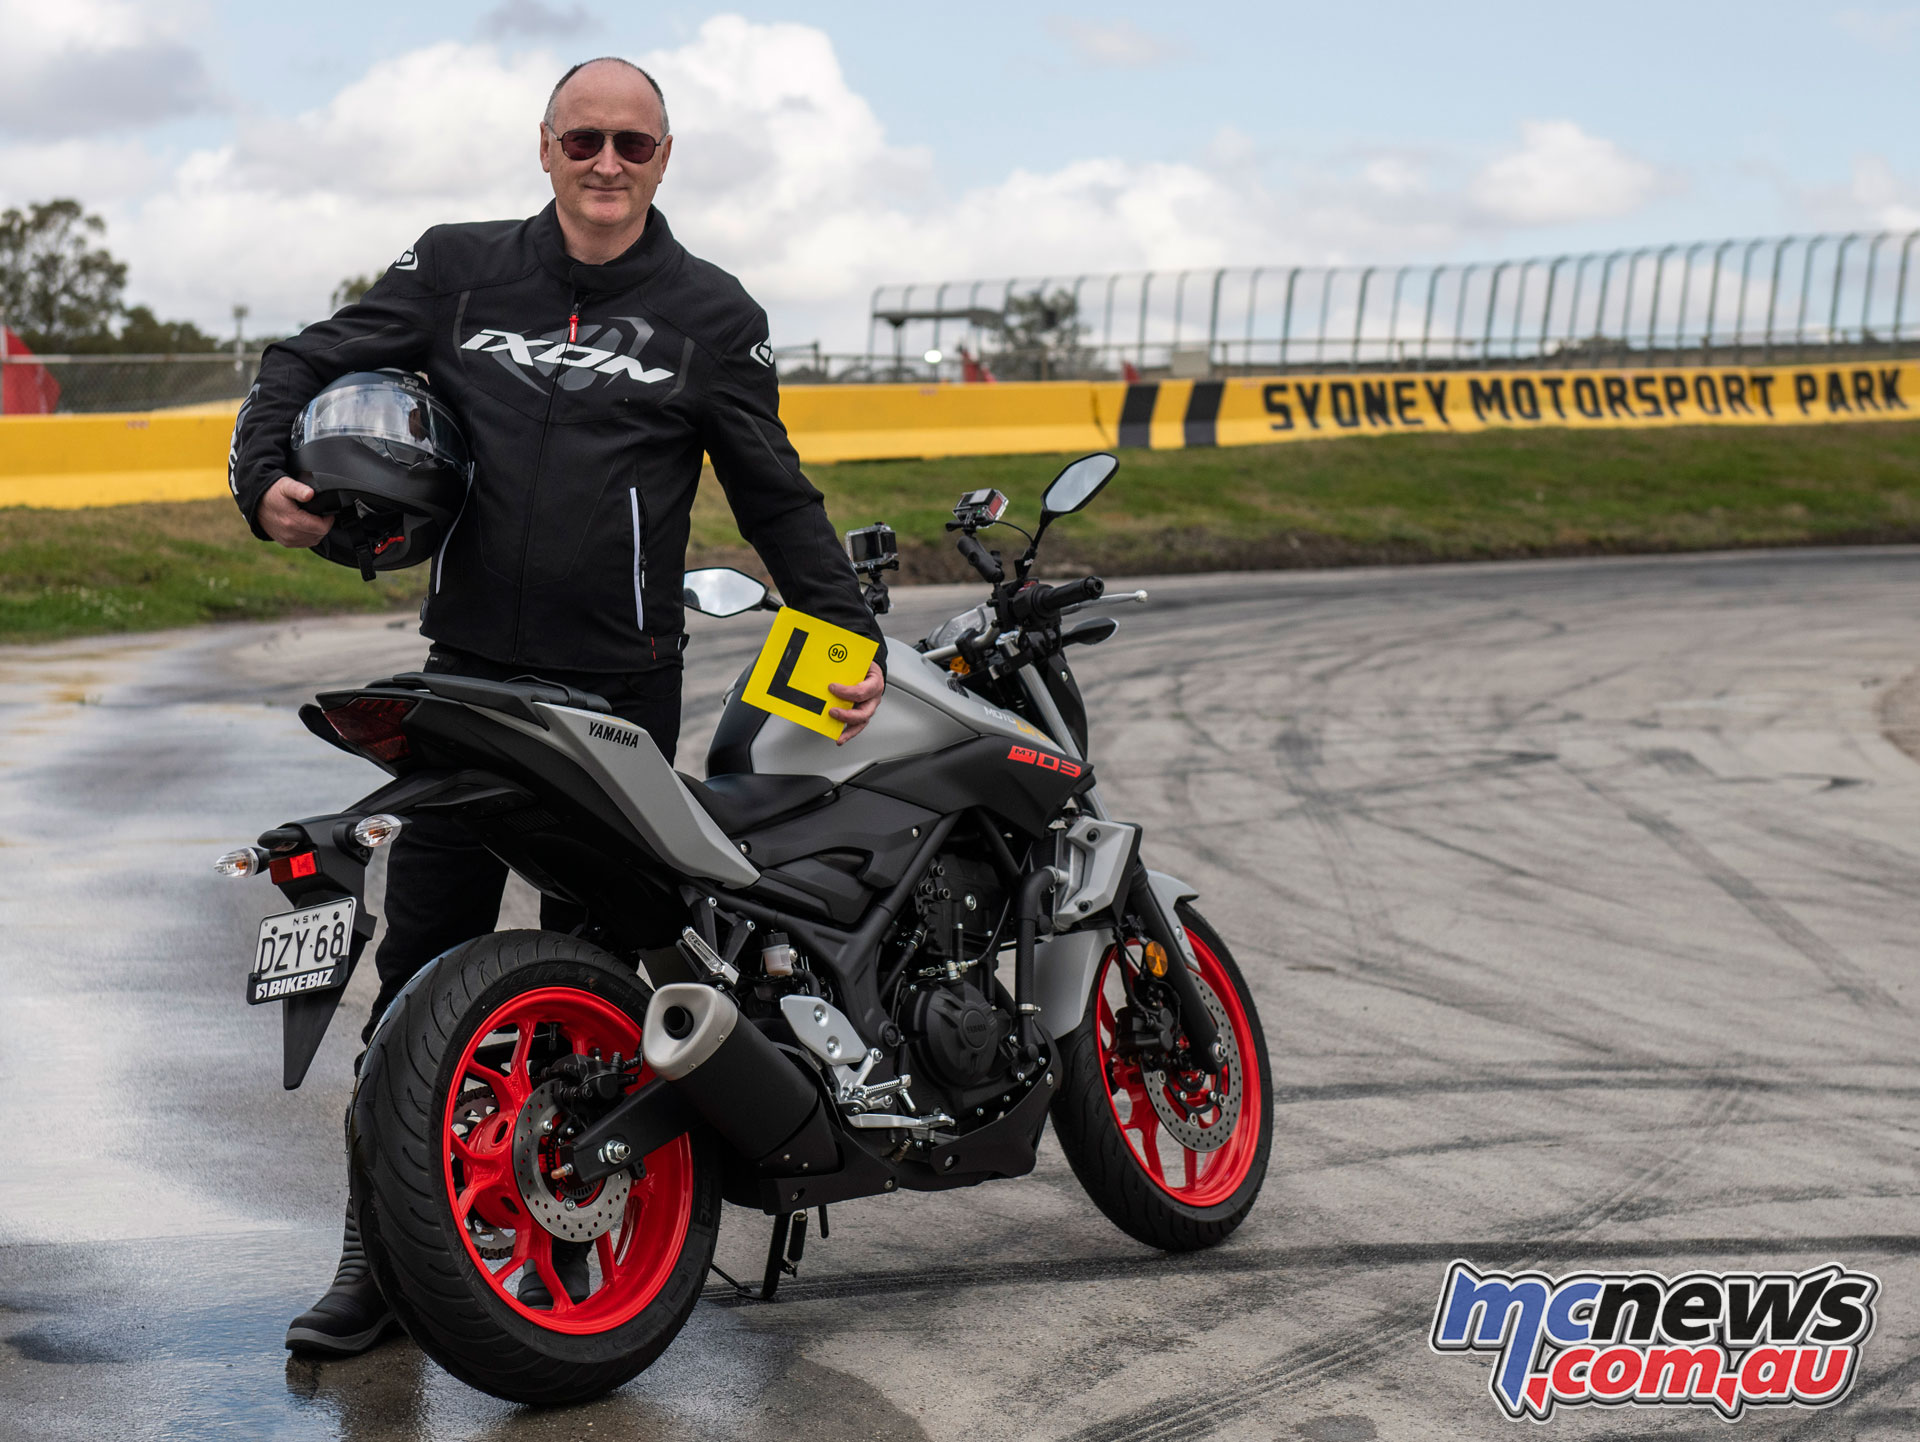 FCAI CEO Tony Weber is learning to ride a motorcycle